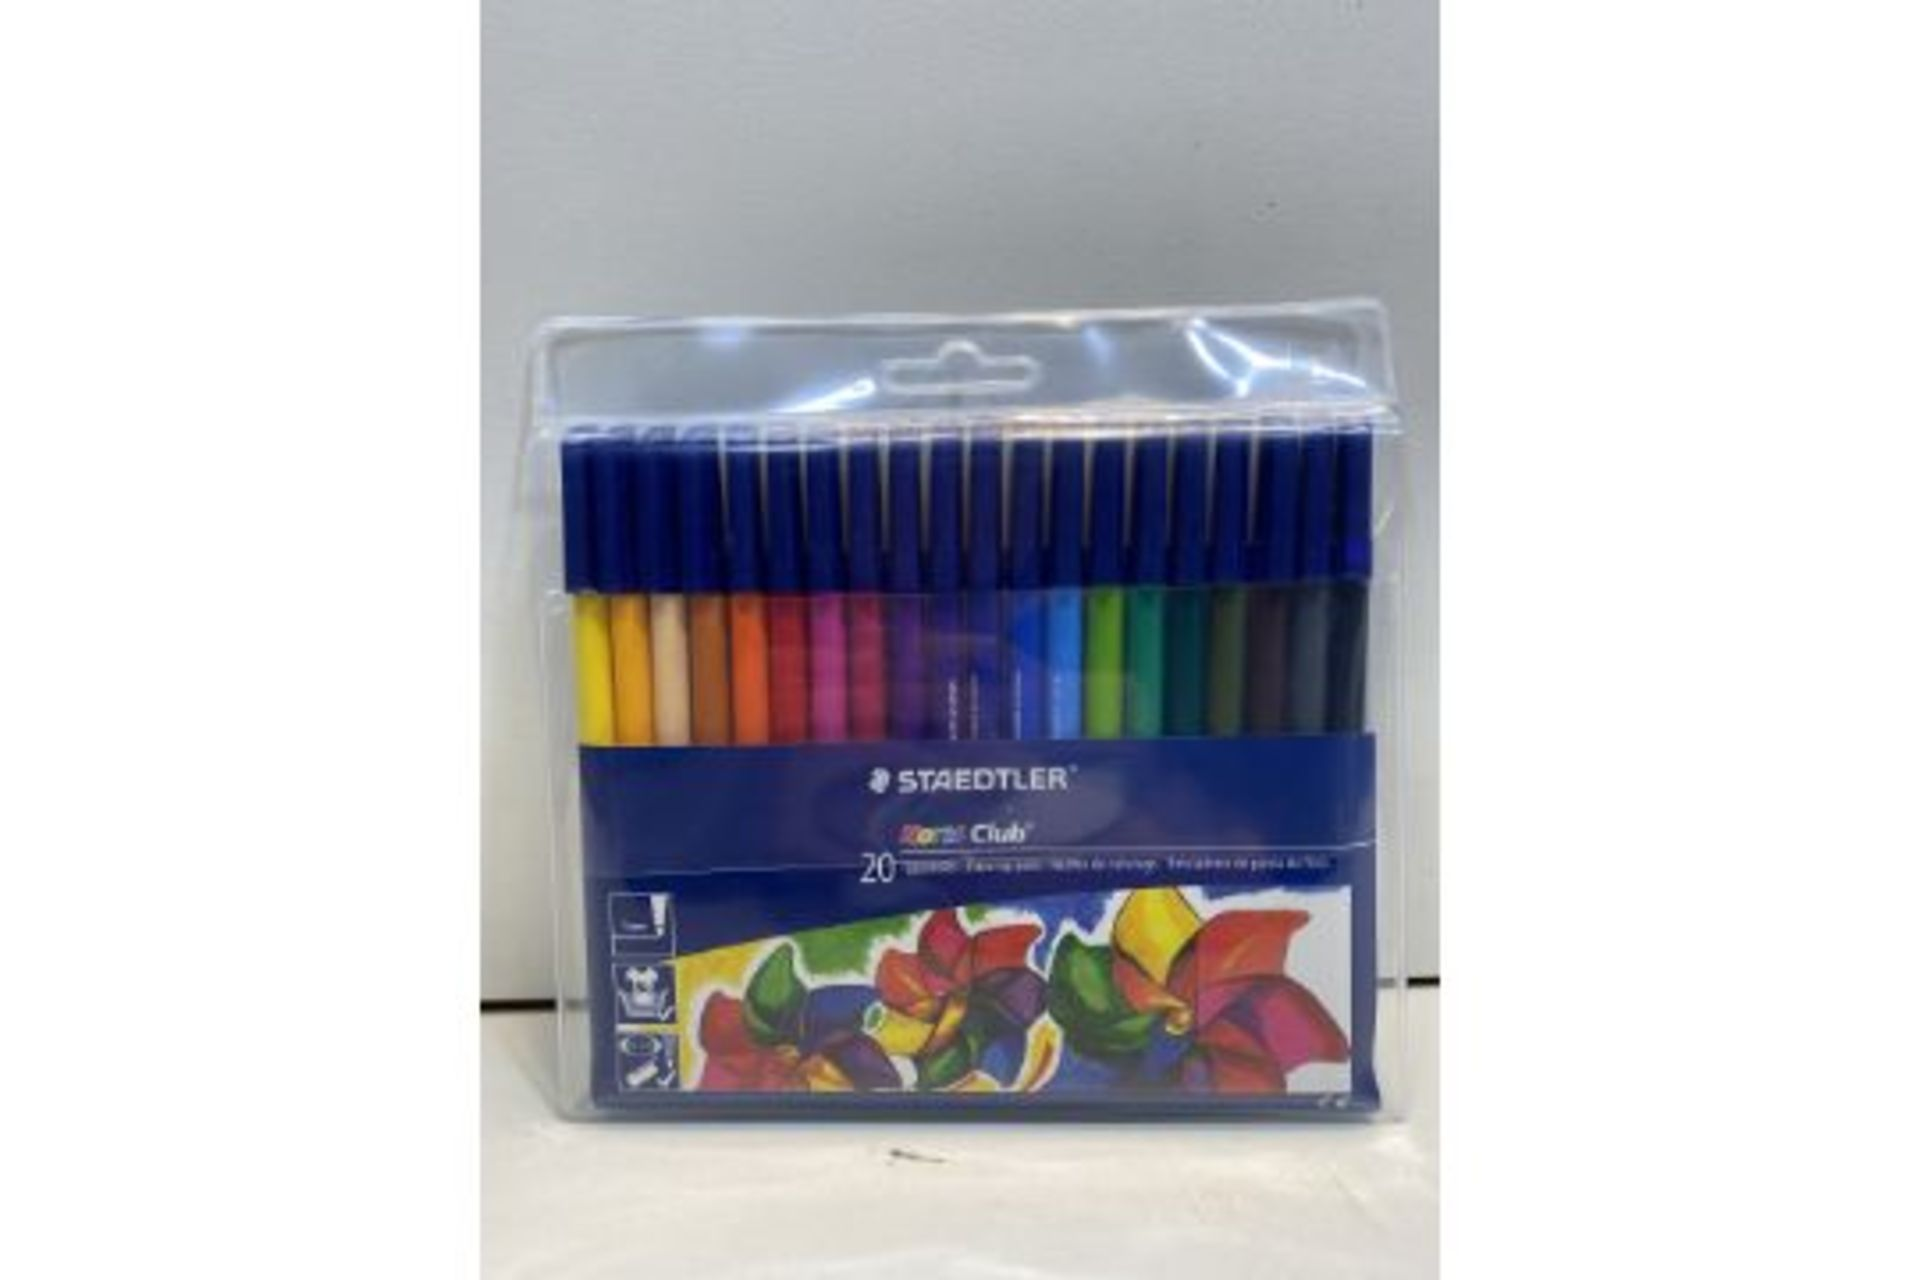 5 x Staedtler Noris Club Fibre Tipped Pens - Pack of 20 | 4007817339664